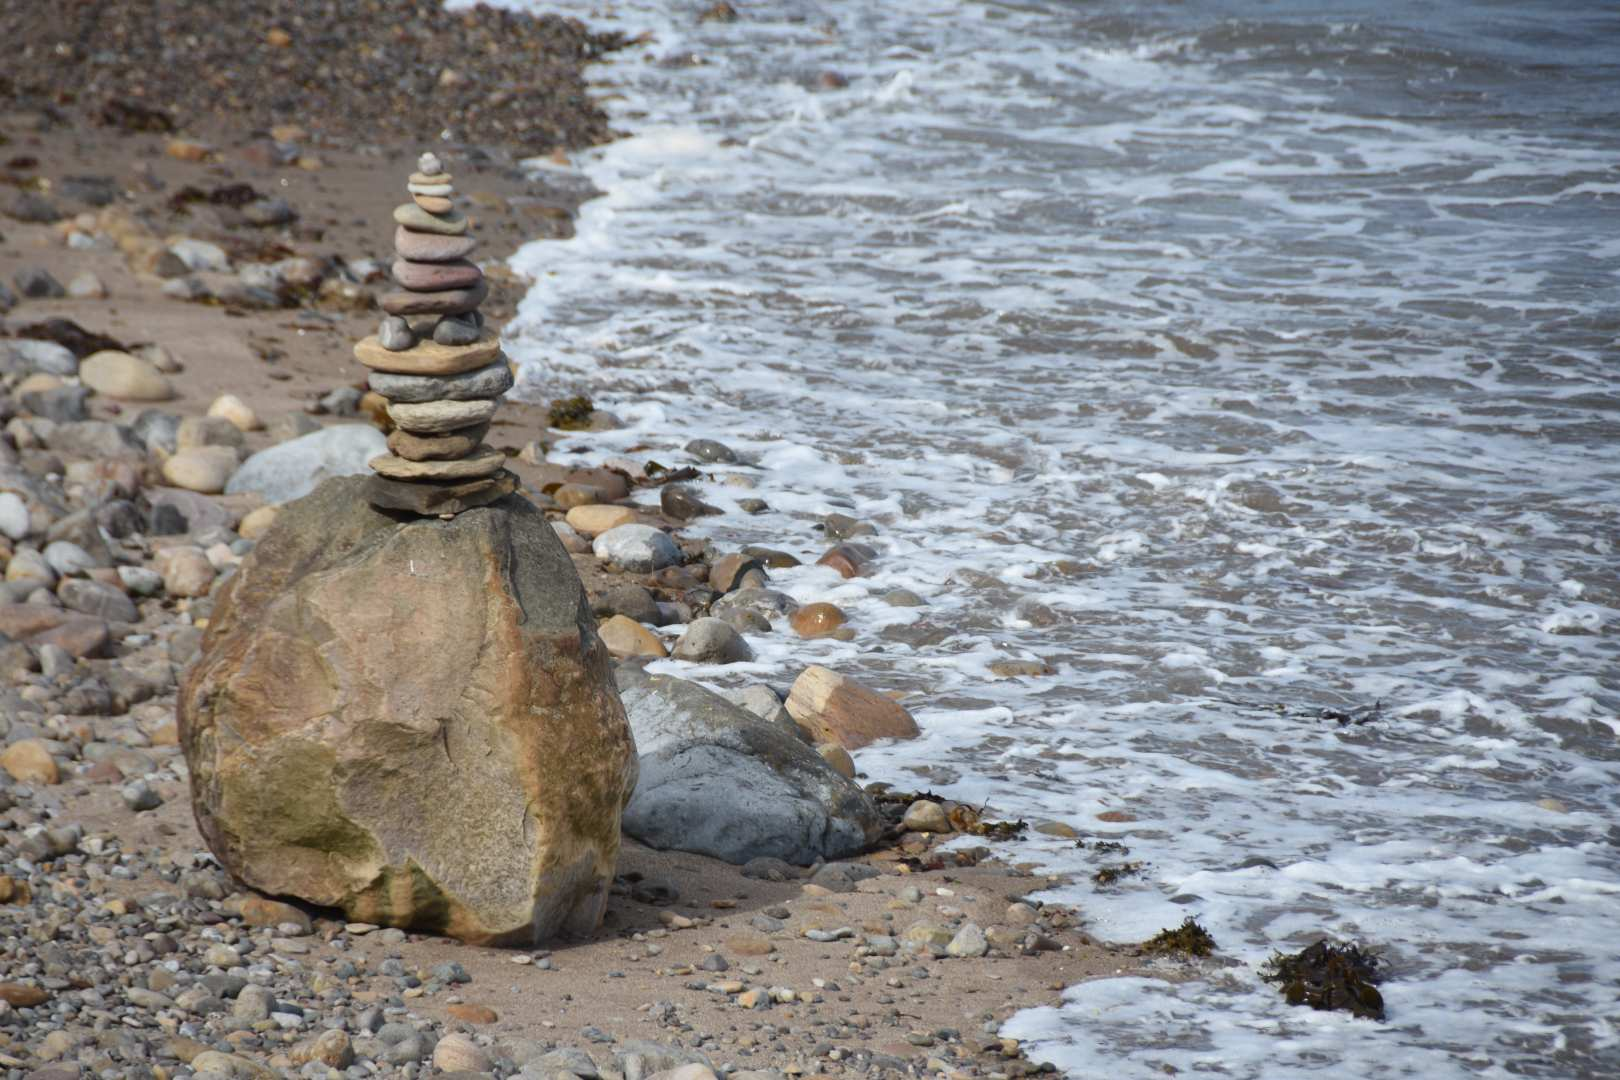 """Stone Sculpture on the Beach at Holy Island"" by Elizabeth Hurrell (2020)"